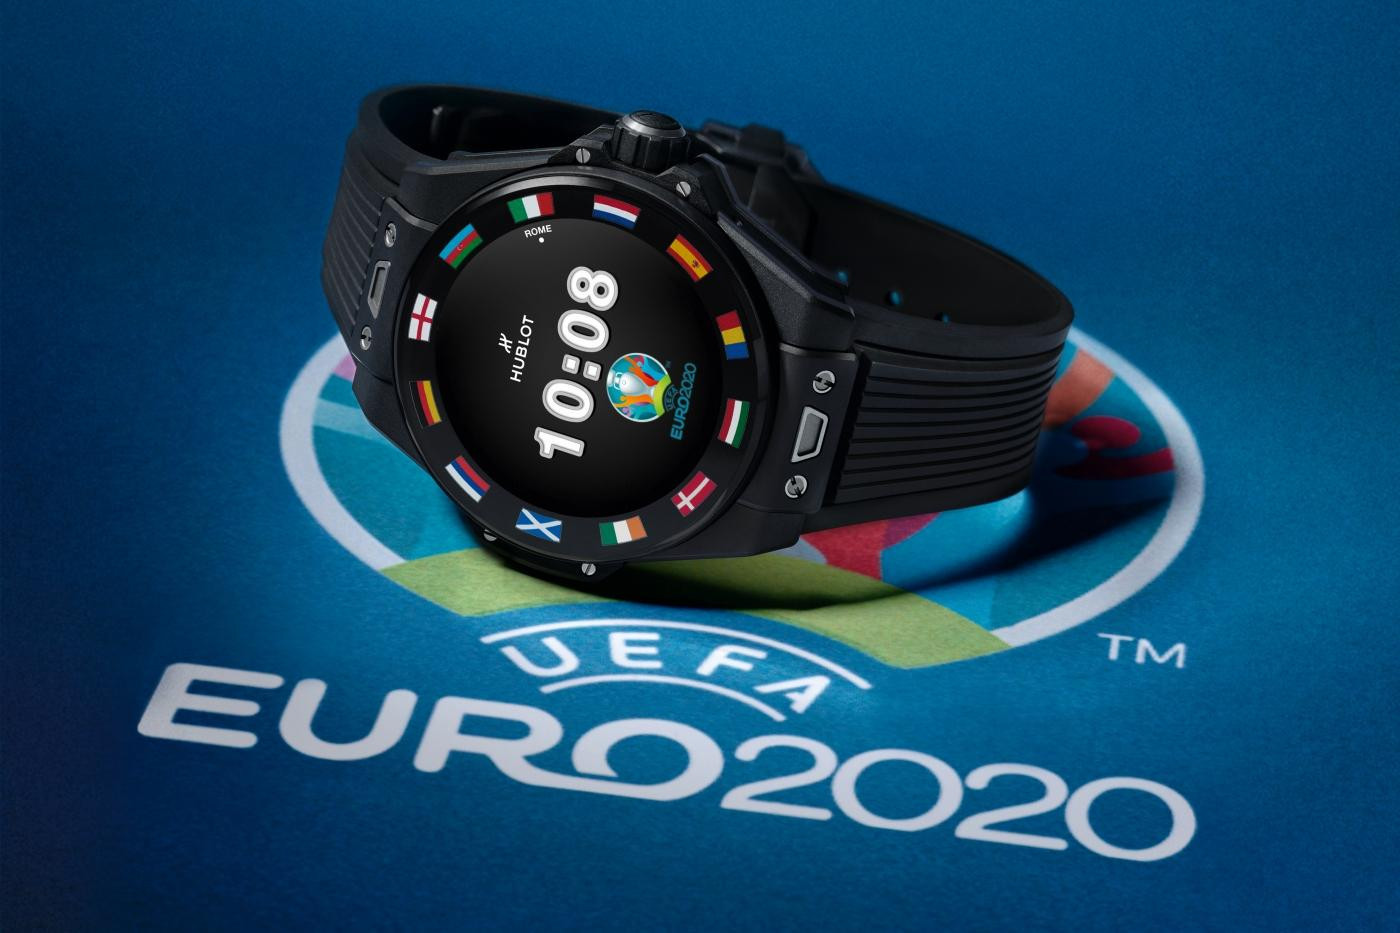 Hublot launch limited edition watch to mark sponsorship of Euro 2020